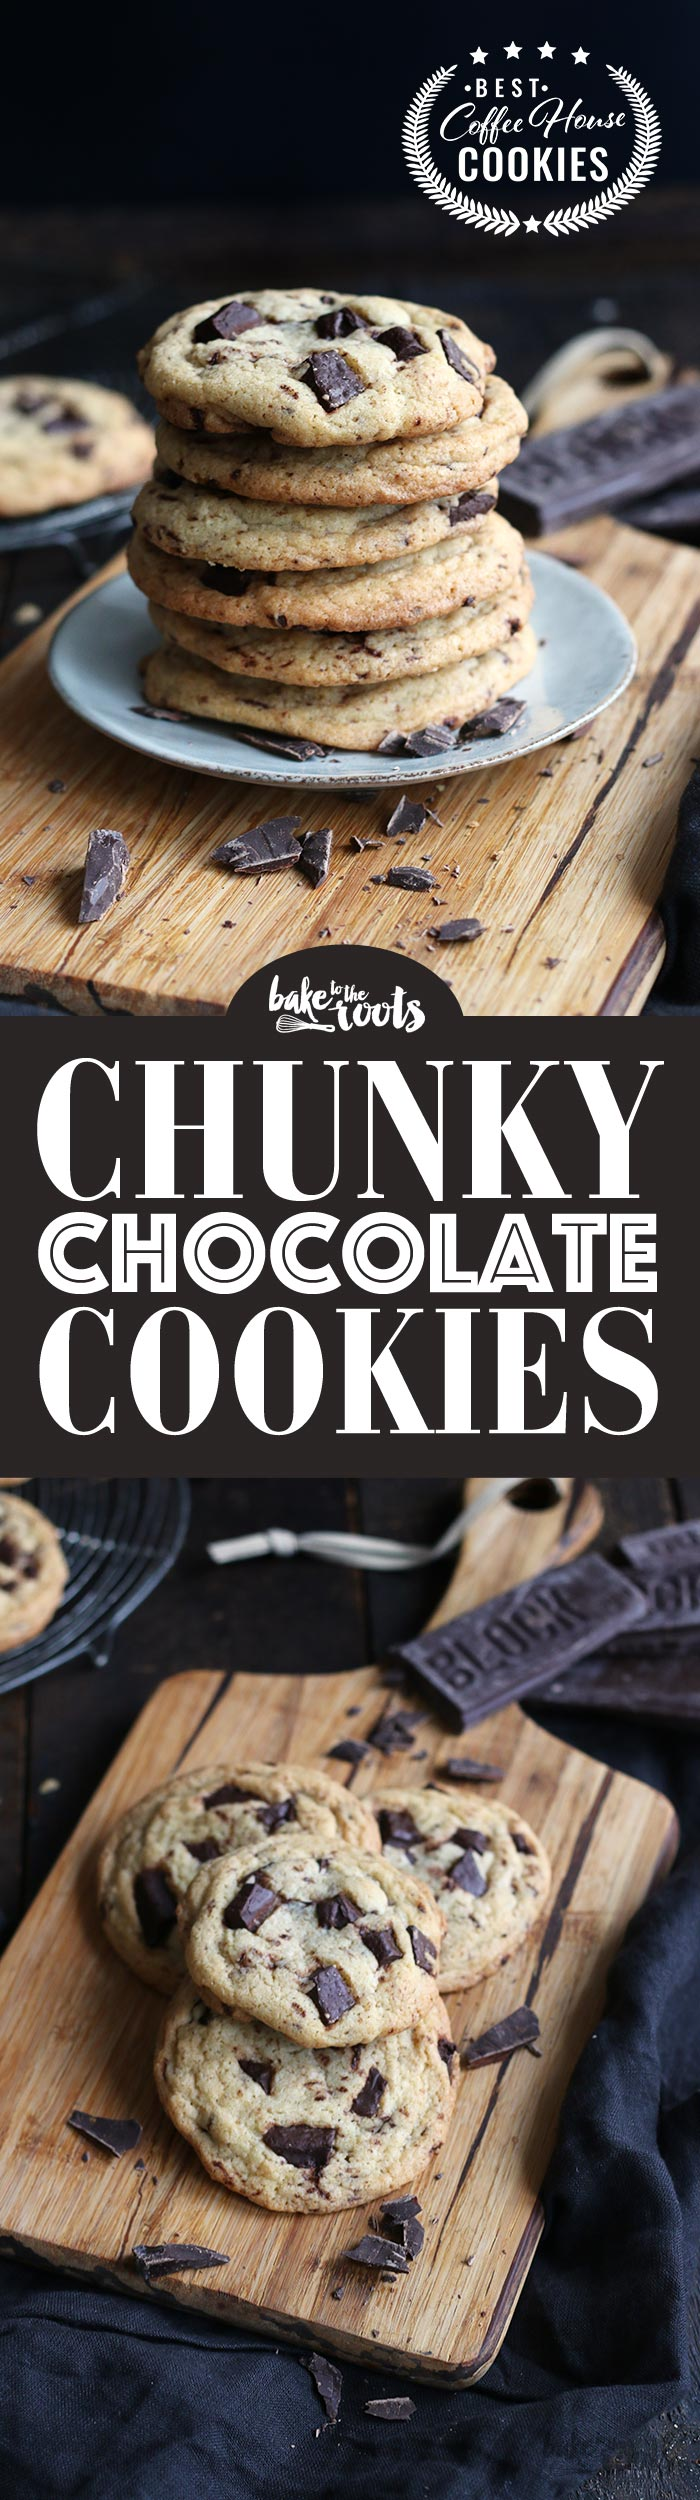 Delicious Chocolate Chip Cookies with large chunks of chocolate | Bake to the roots